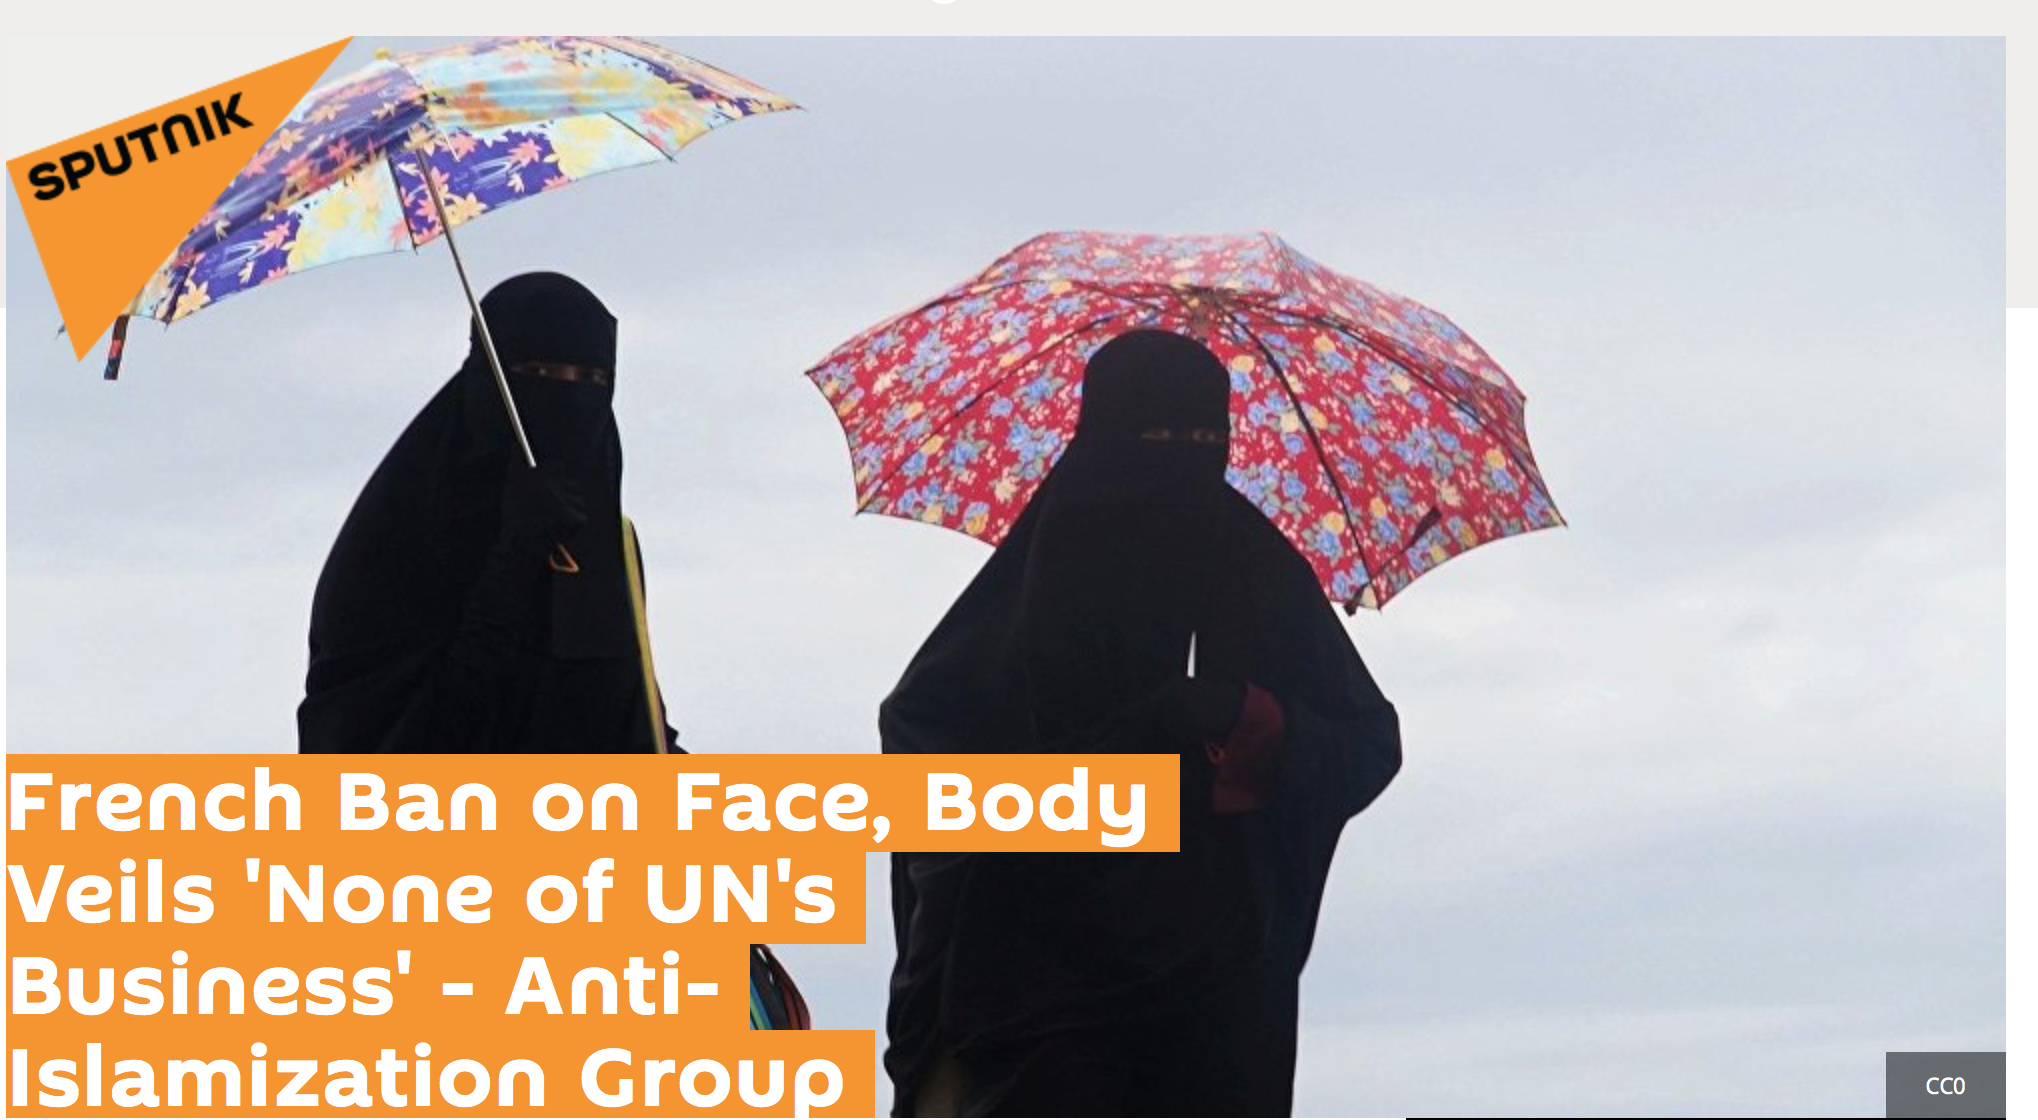 Christine Tasin sur Sputnik  : interdiction du Niqab ? Cela ne regarde pas l'ONU